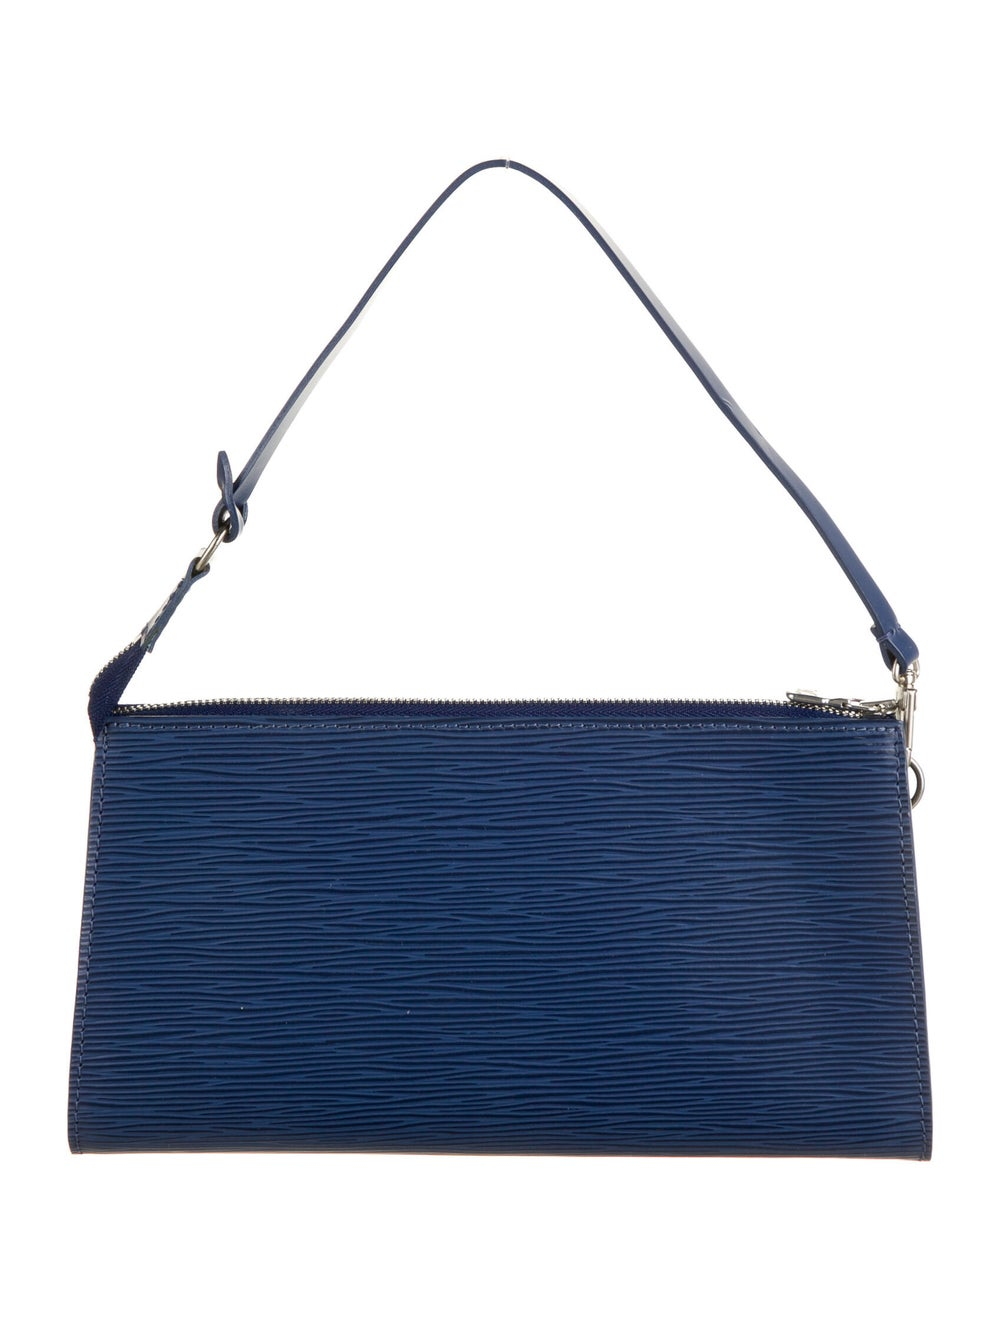 Louis Vuitton Epi Pochette Accessories 24 Indigo - image 4